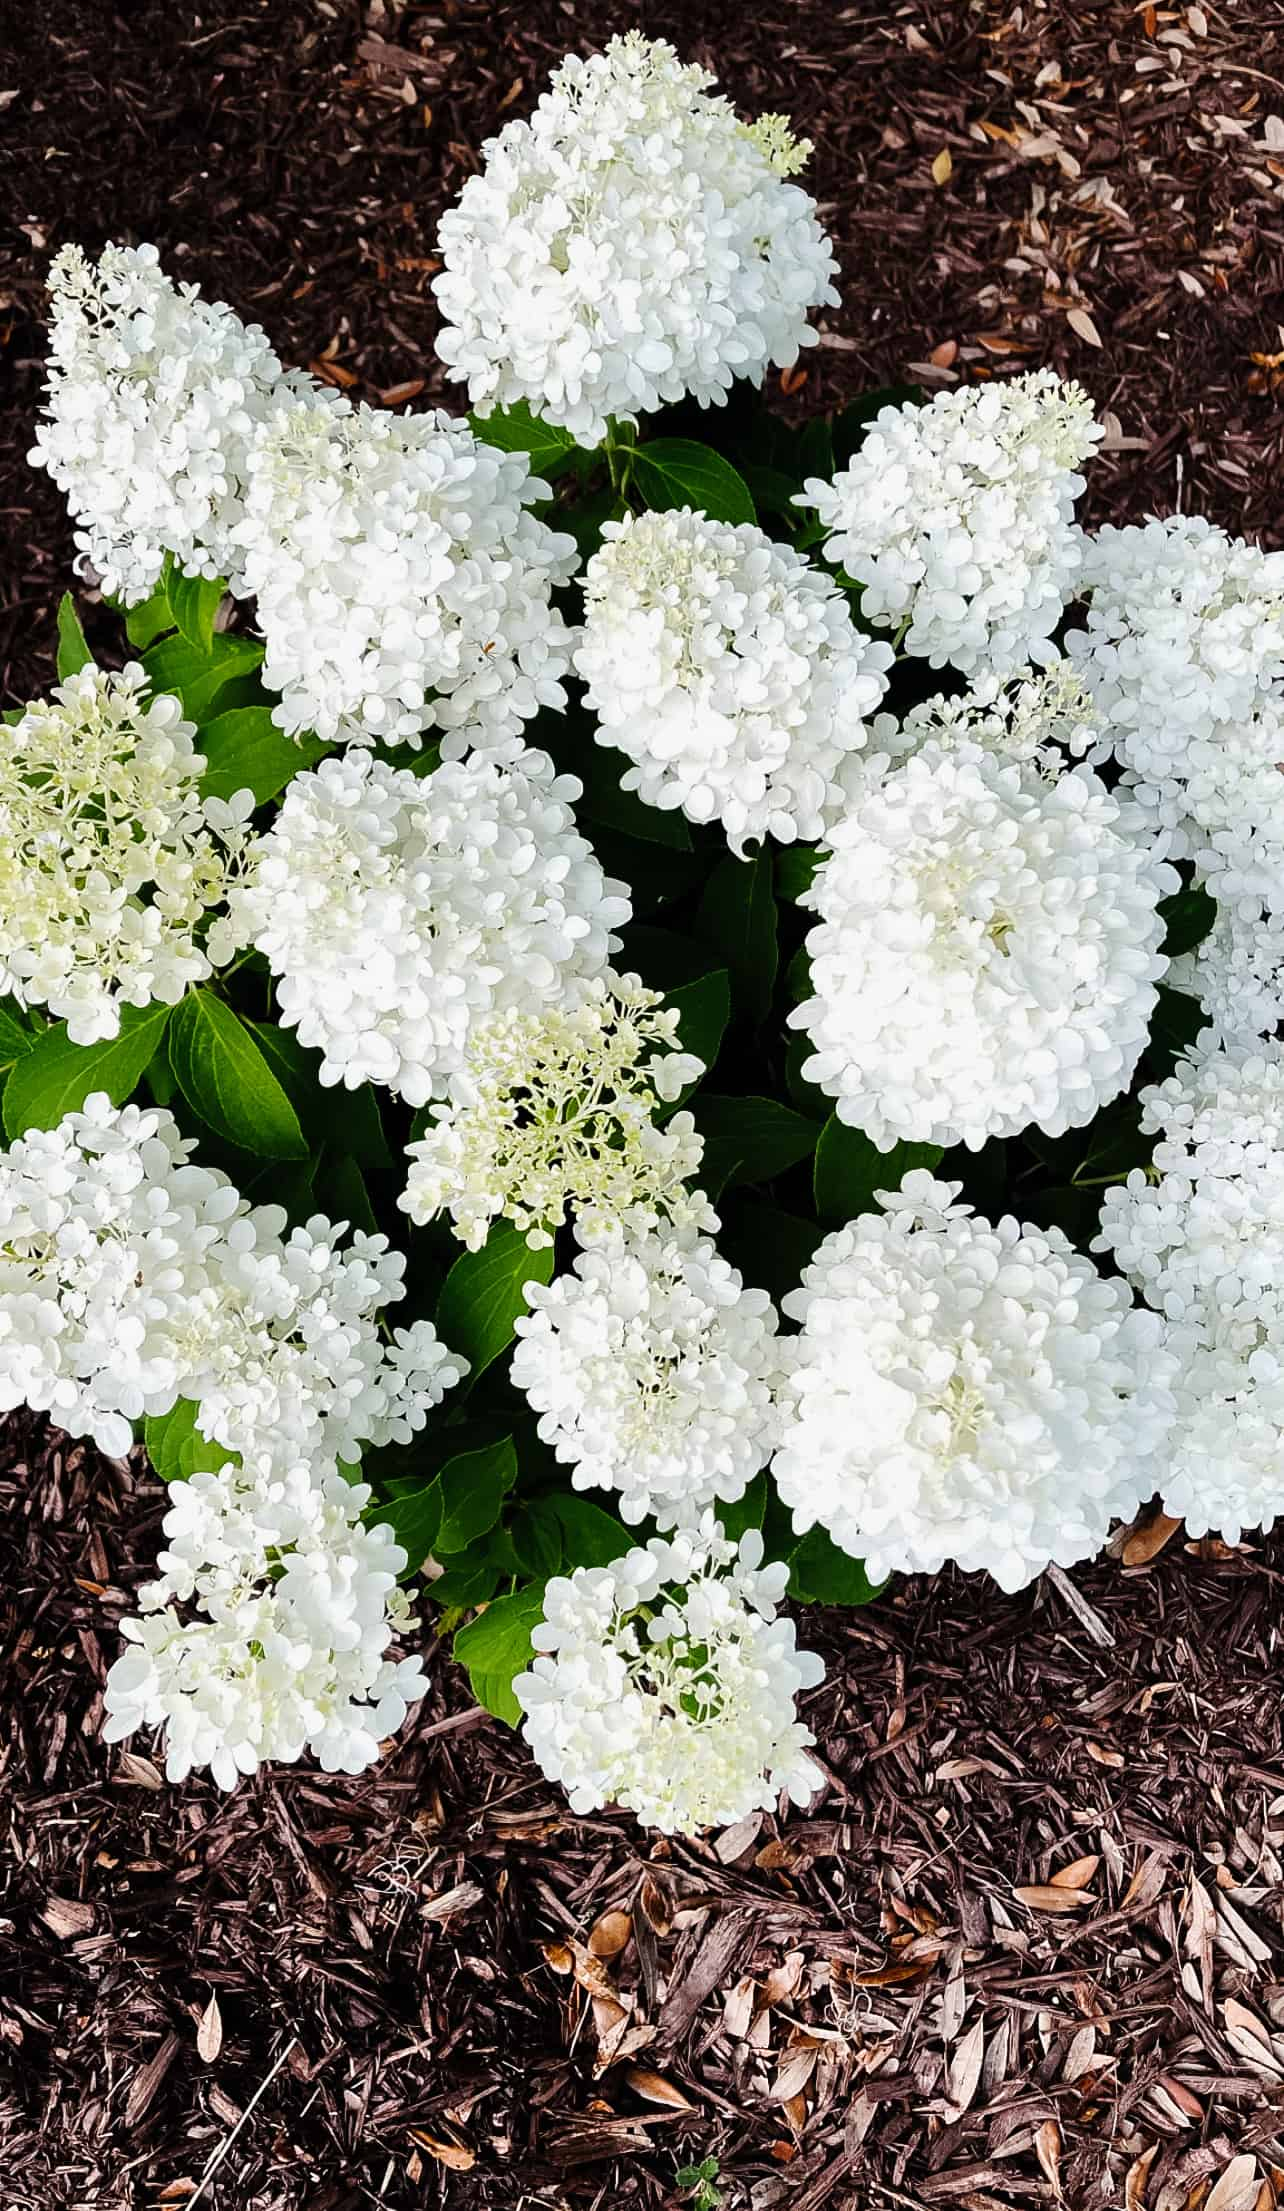 Panicle hydrangeas, the White Wedding variety from Southern Living Plant Collection and how to care for the hydrangeas.